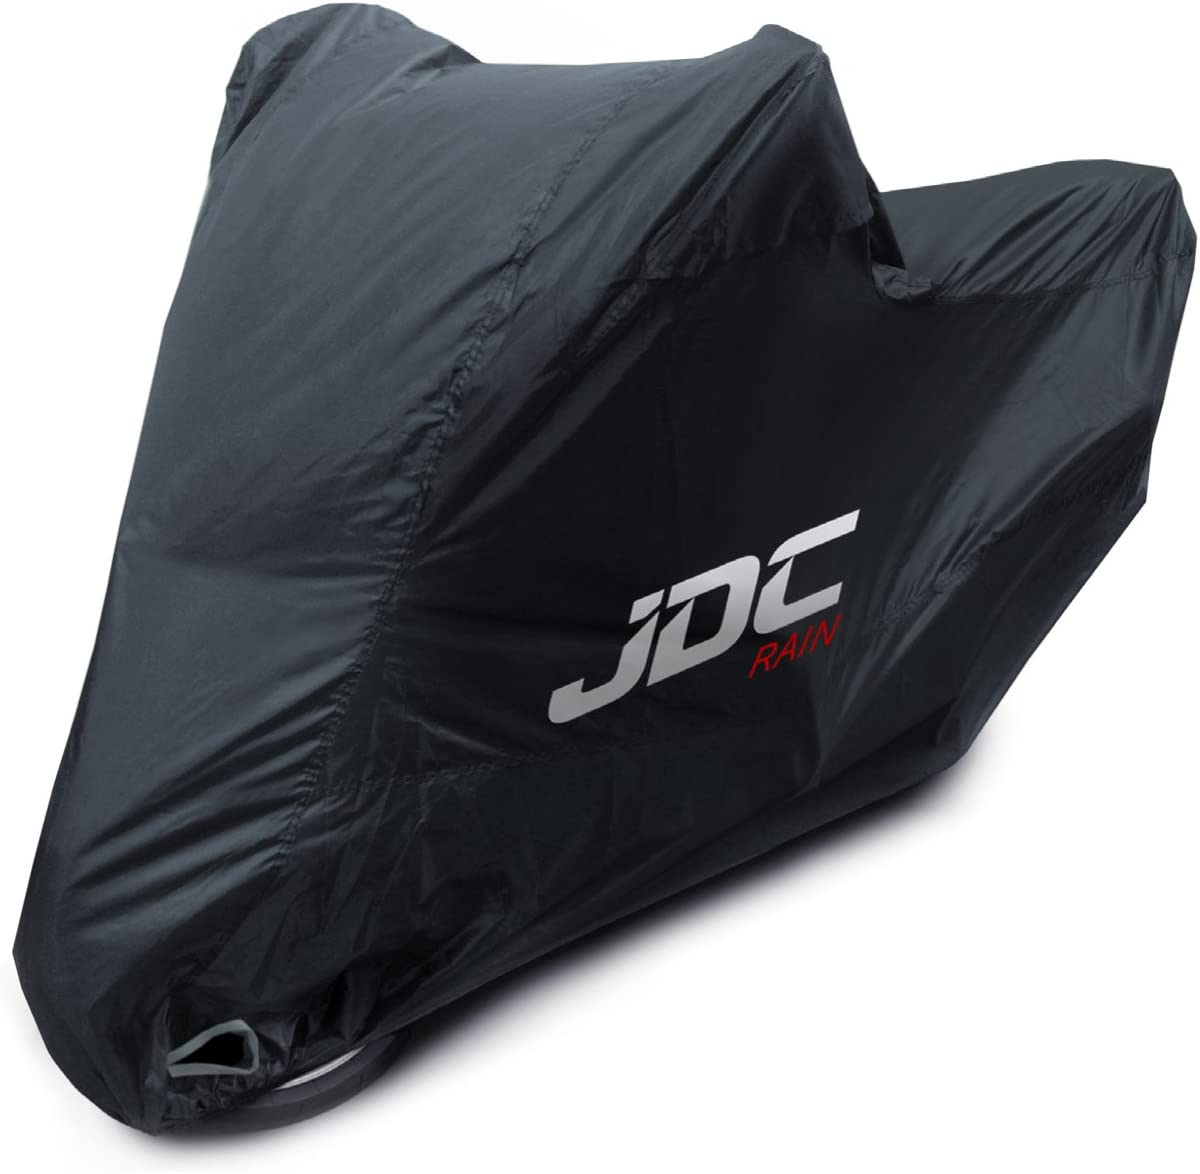 Silver RAIN JDC Motorcycle Cover Waterproof L